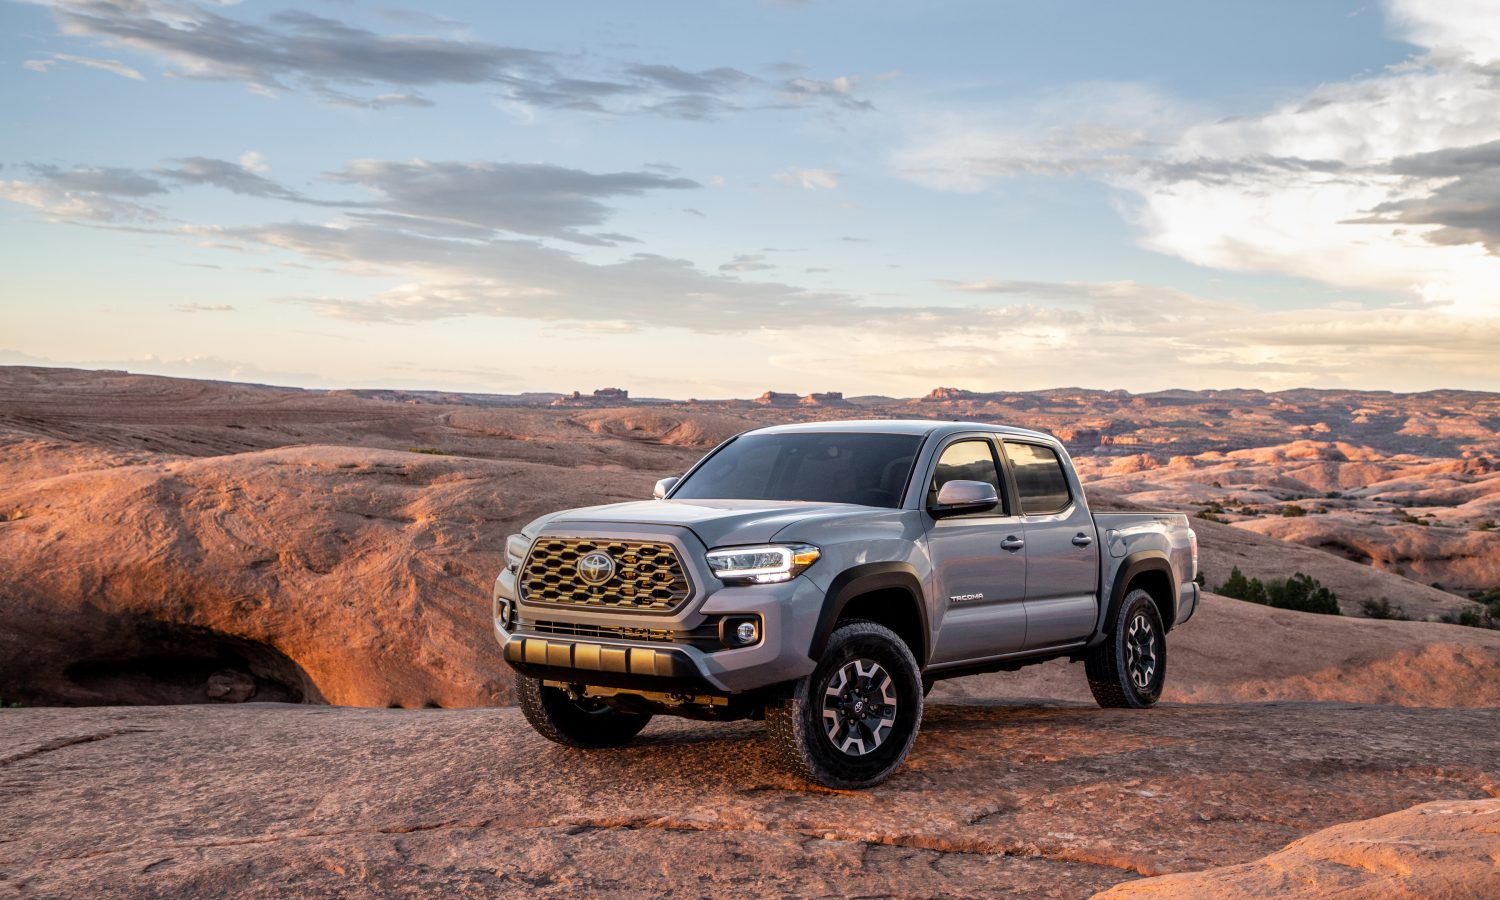 2021 Toyota Tacoma Hybrid Would Be Great Fuel Efficient Alternative